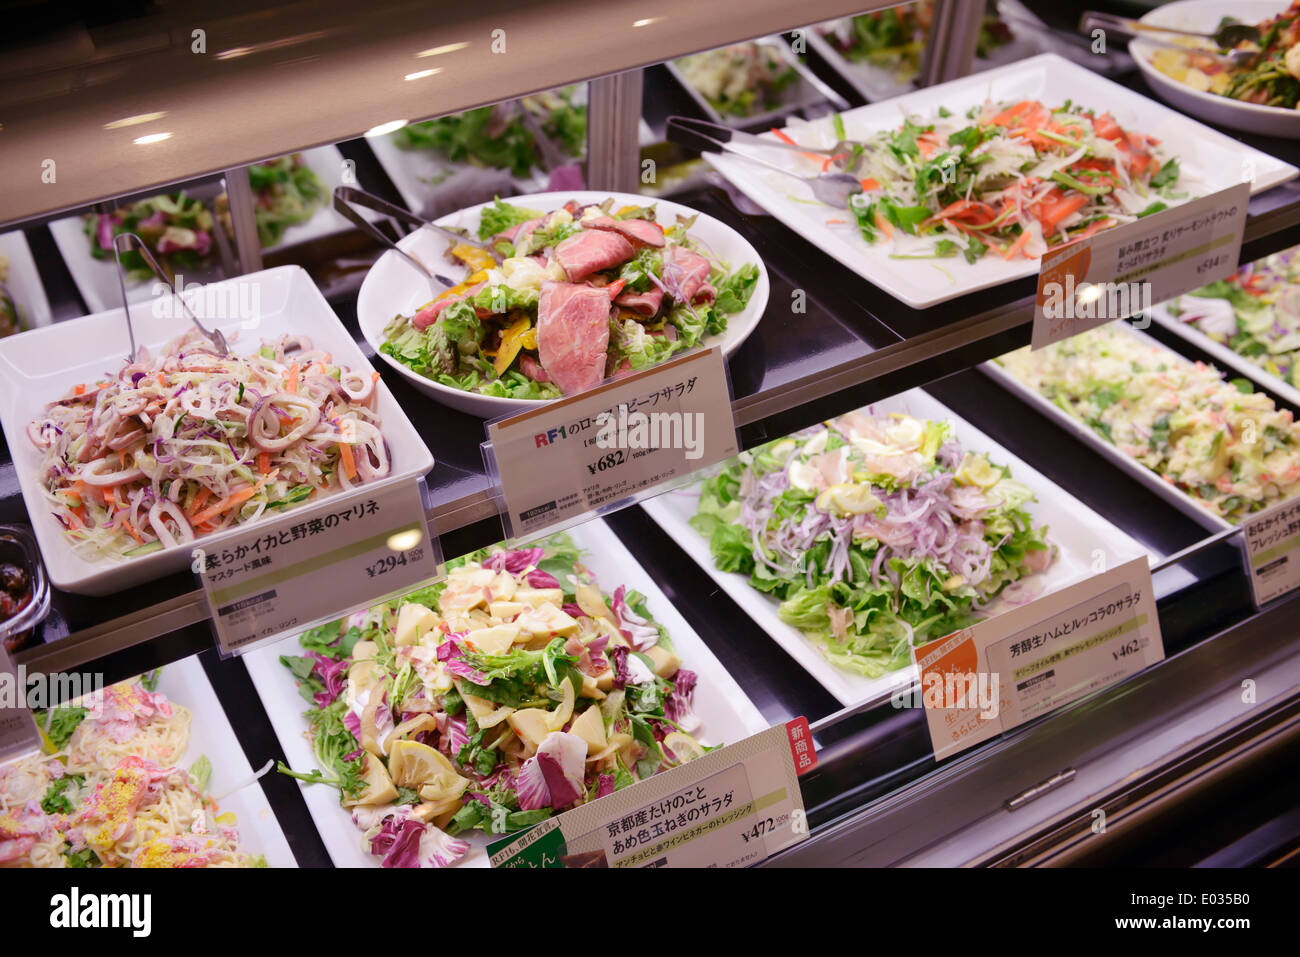 Salads on display in a Japanese supermarket. Tokyo, Japan. - Stock Image